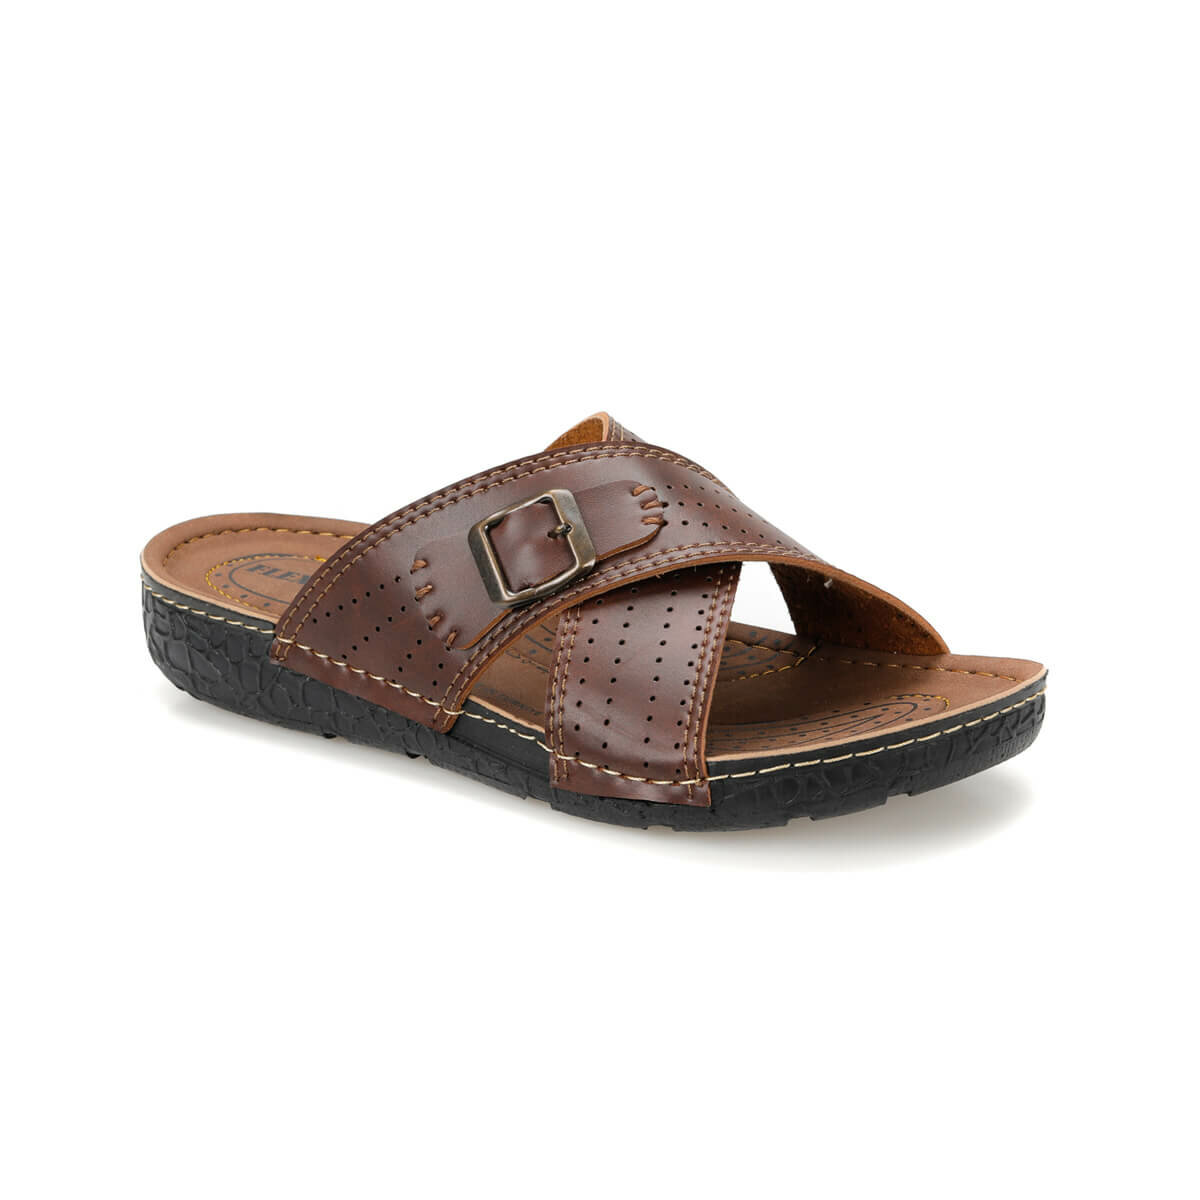 FLO BNK-05 Tan Male Slippers Flexall